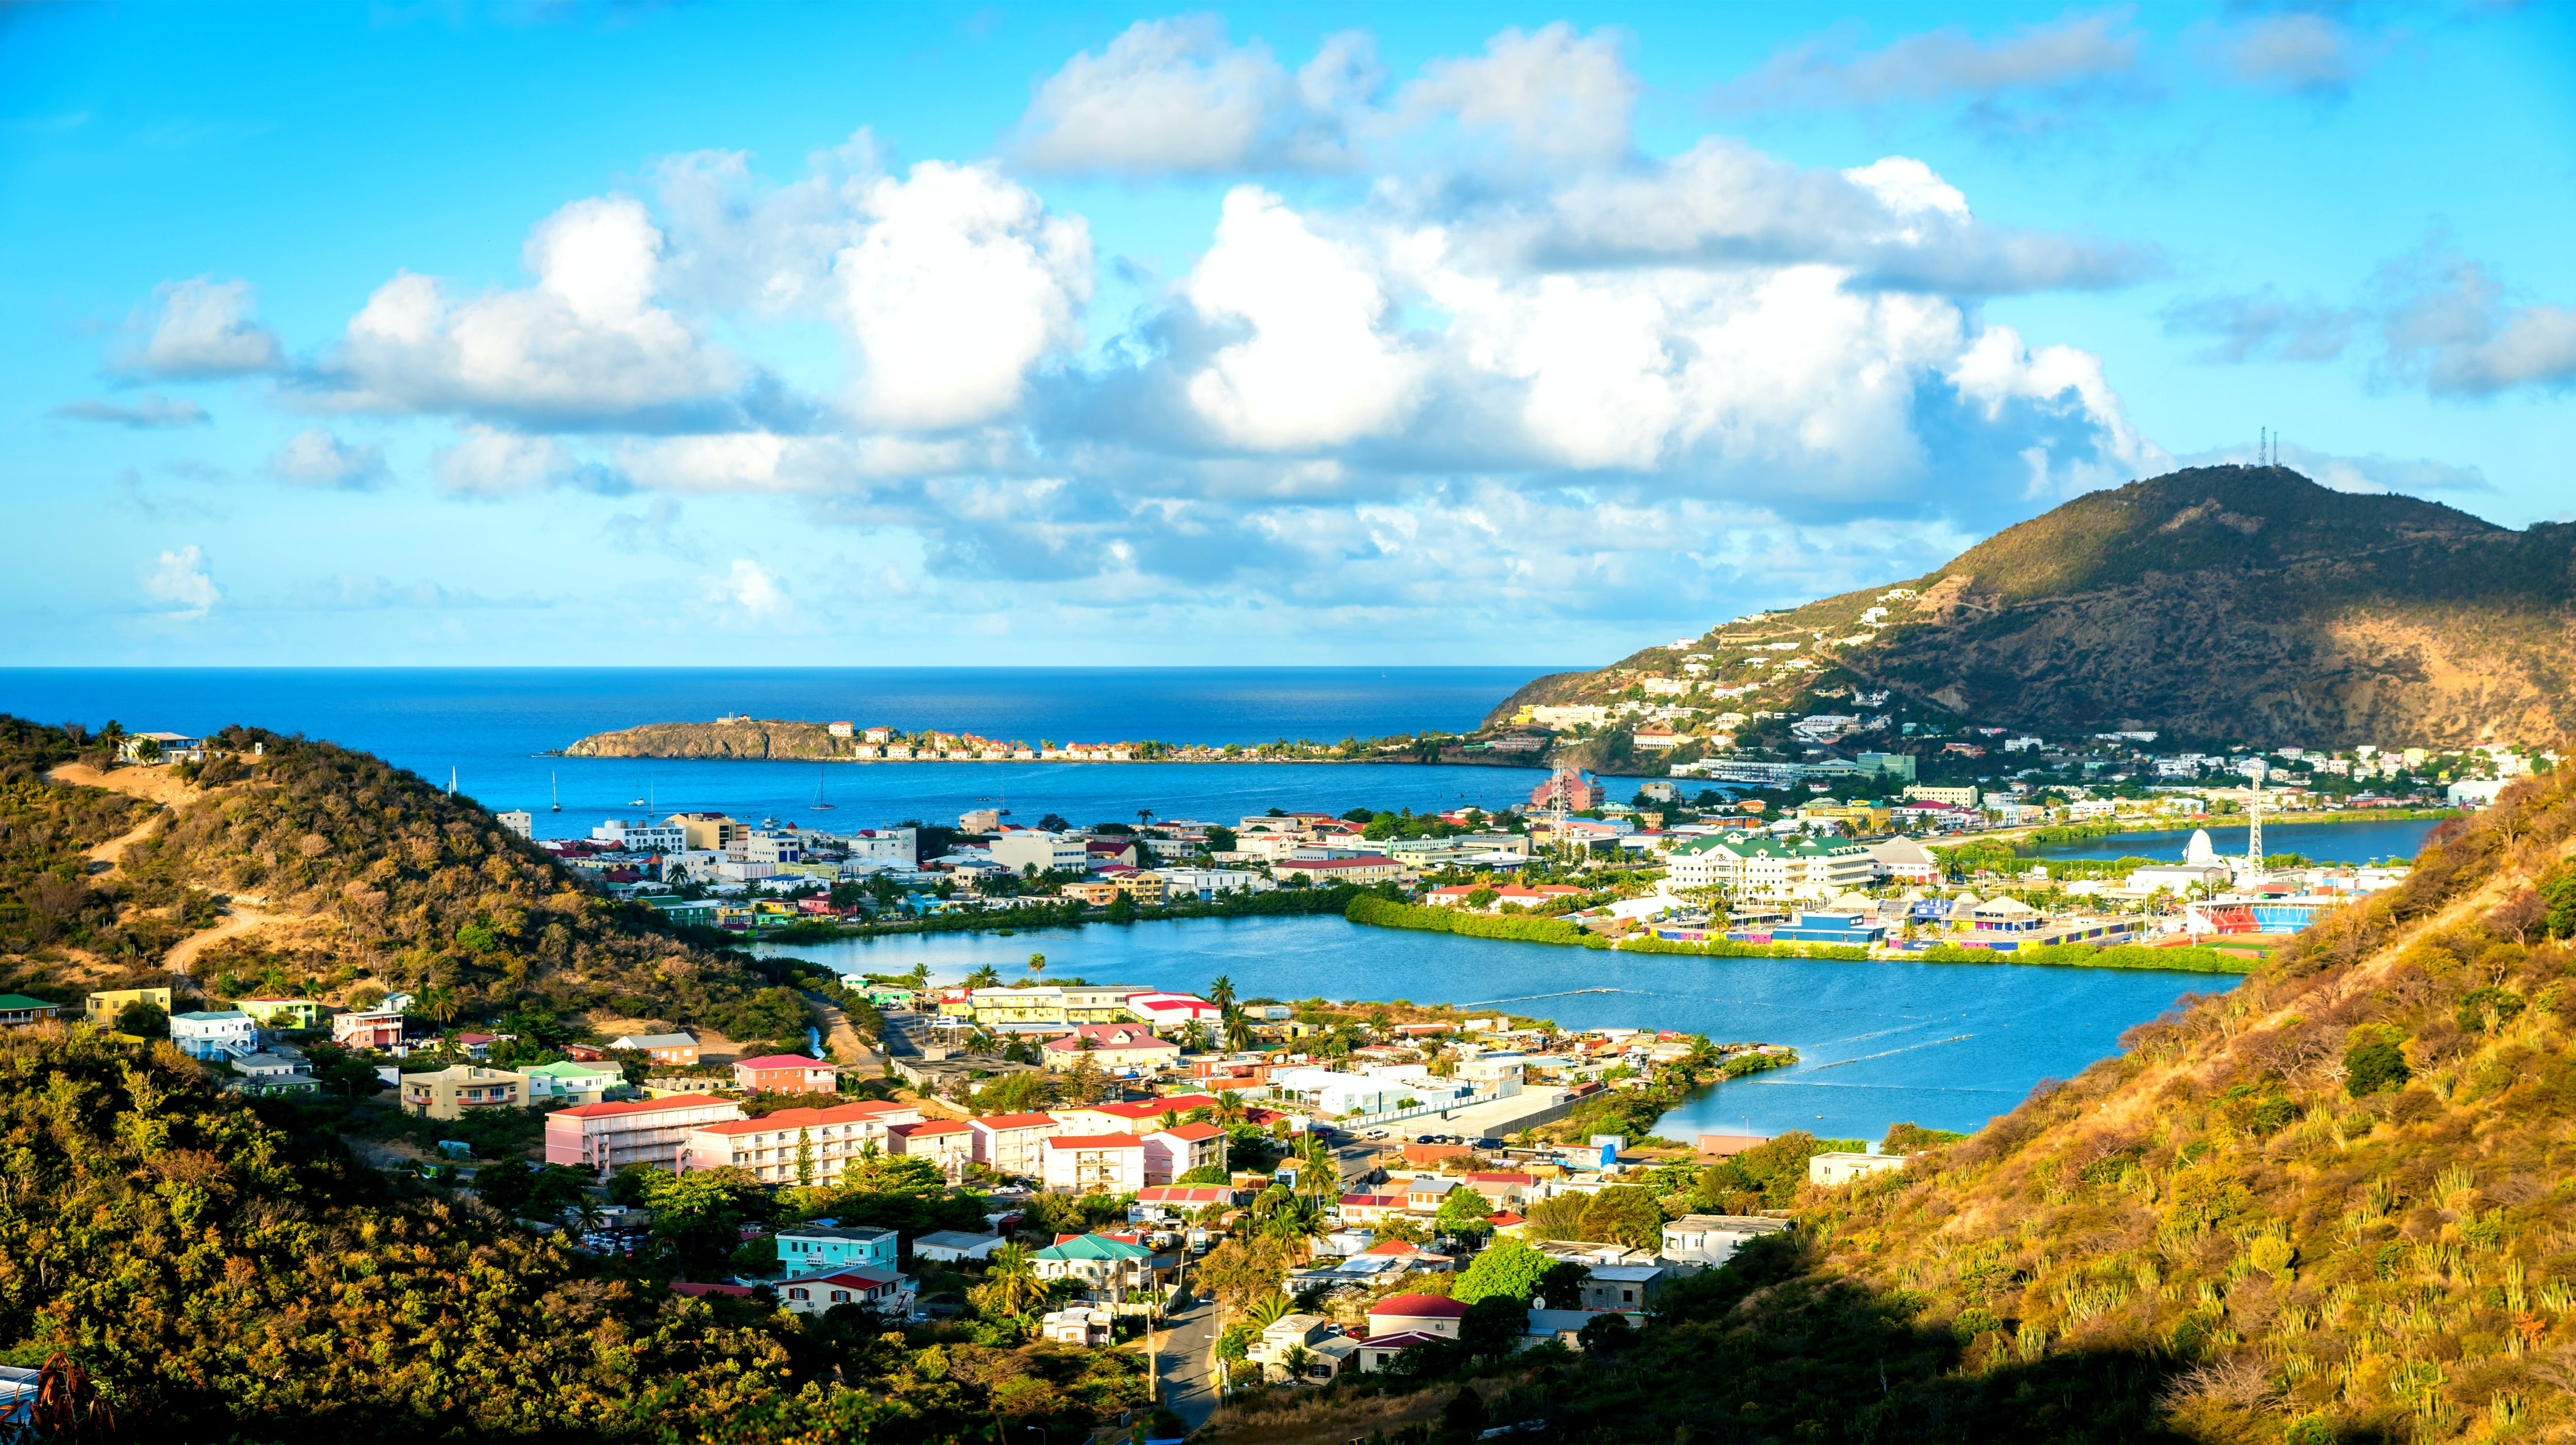 From its architecture to its aesthetics, St. Maarten is a unique blend of both Caribbean and European influence.